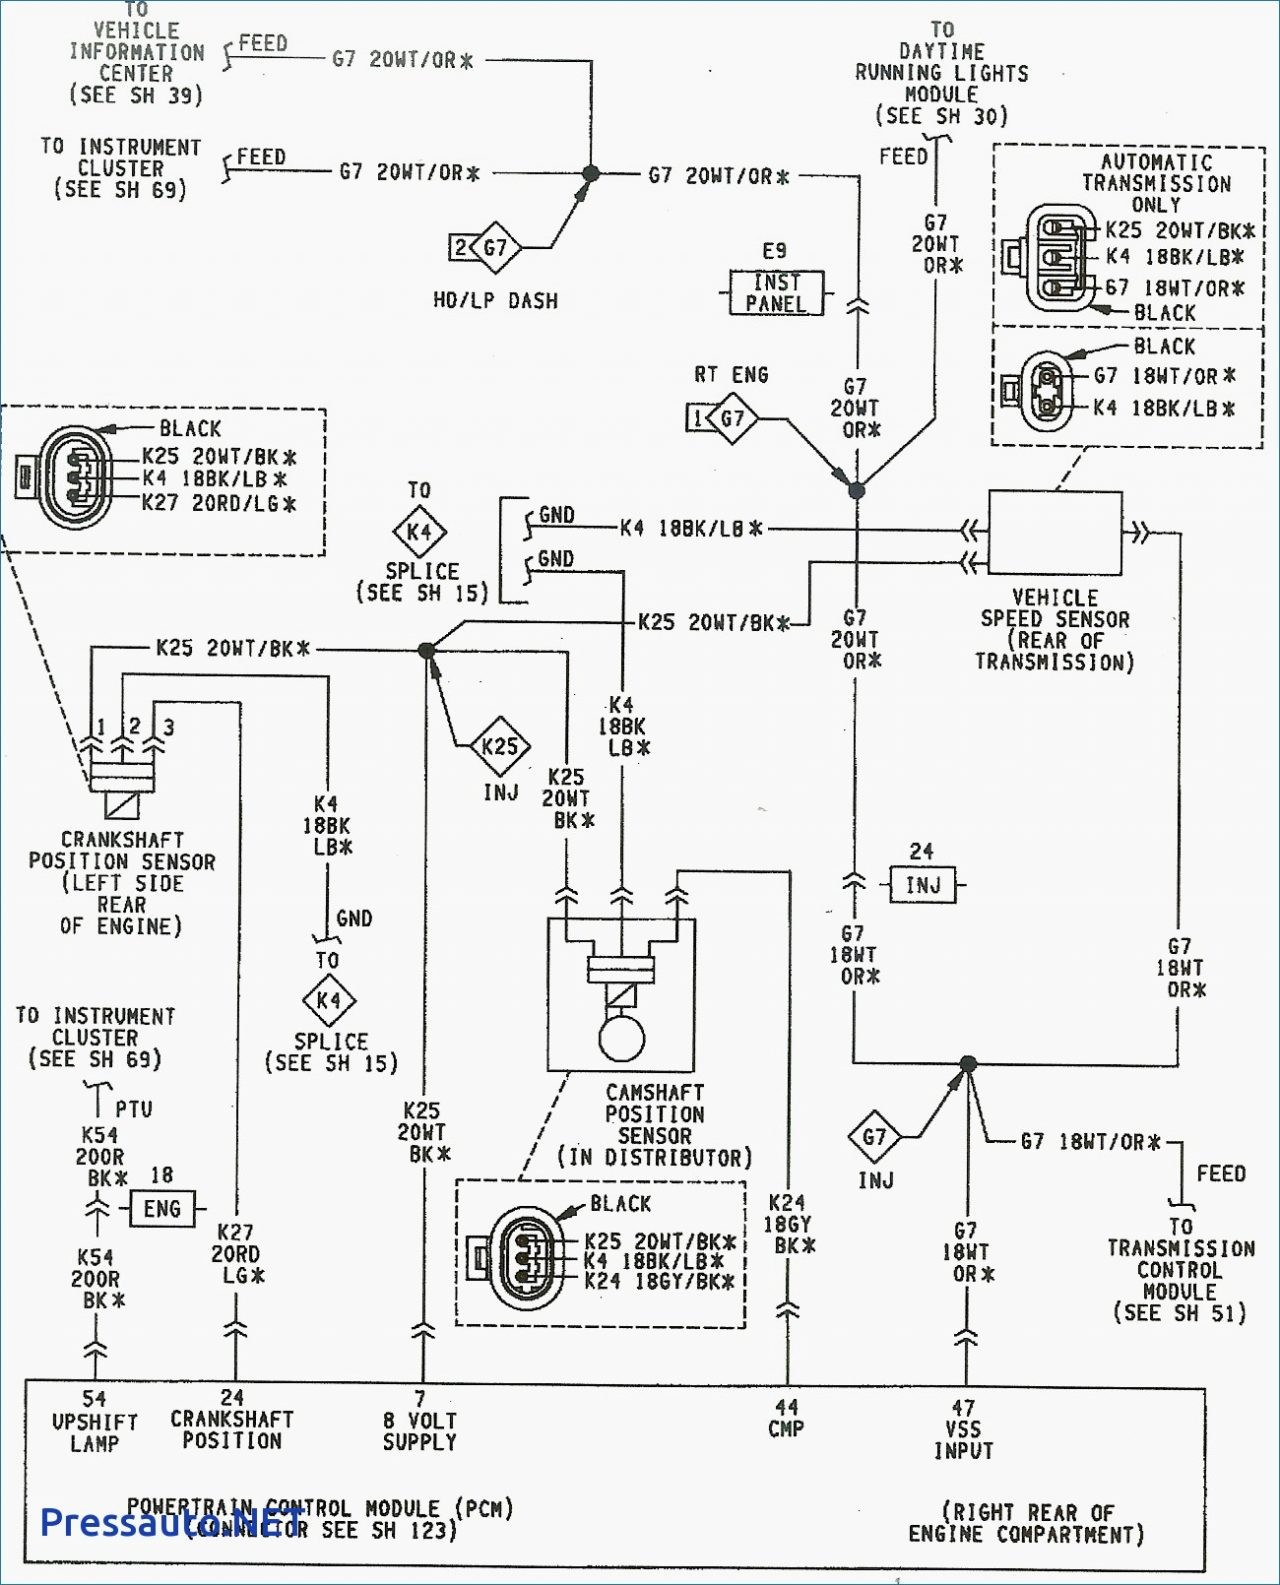 2000 Jeep Cherokee Wiring Diagram How to Remove Fuse Box From Jeep Cherokee Youtube Diagram Speaker Of 2000 Jeep Cherokee Wiring Diagram